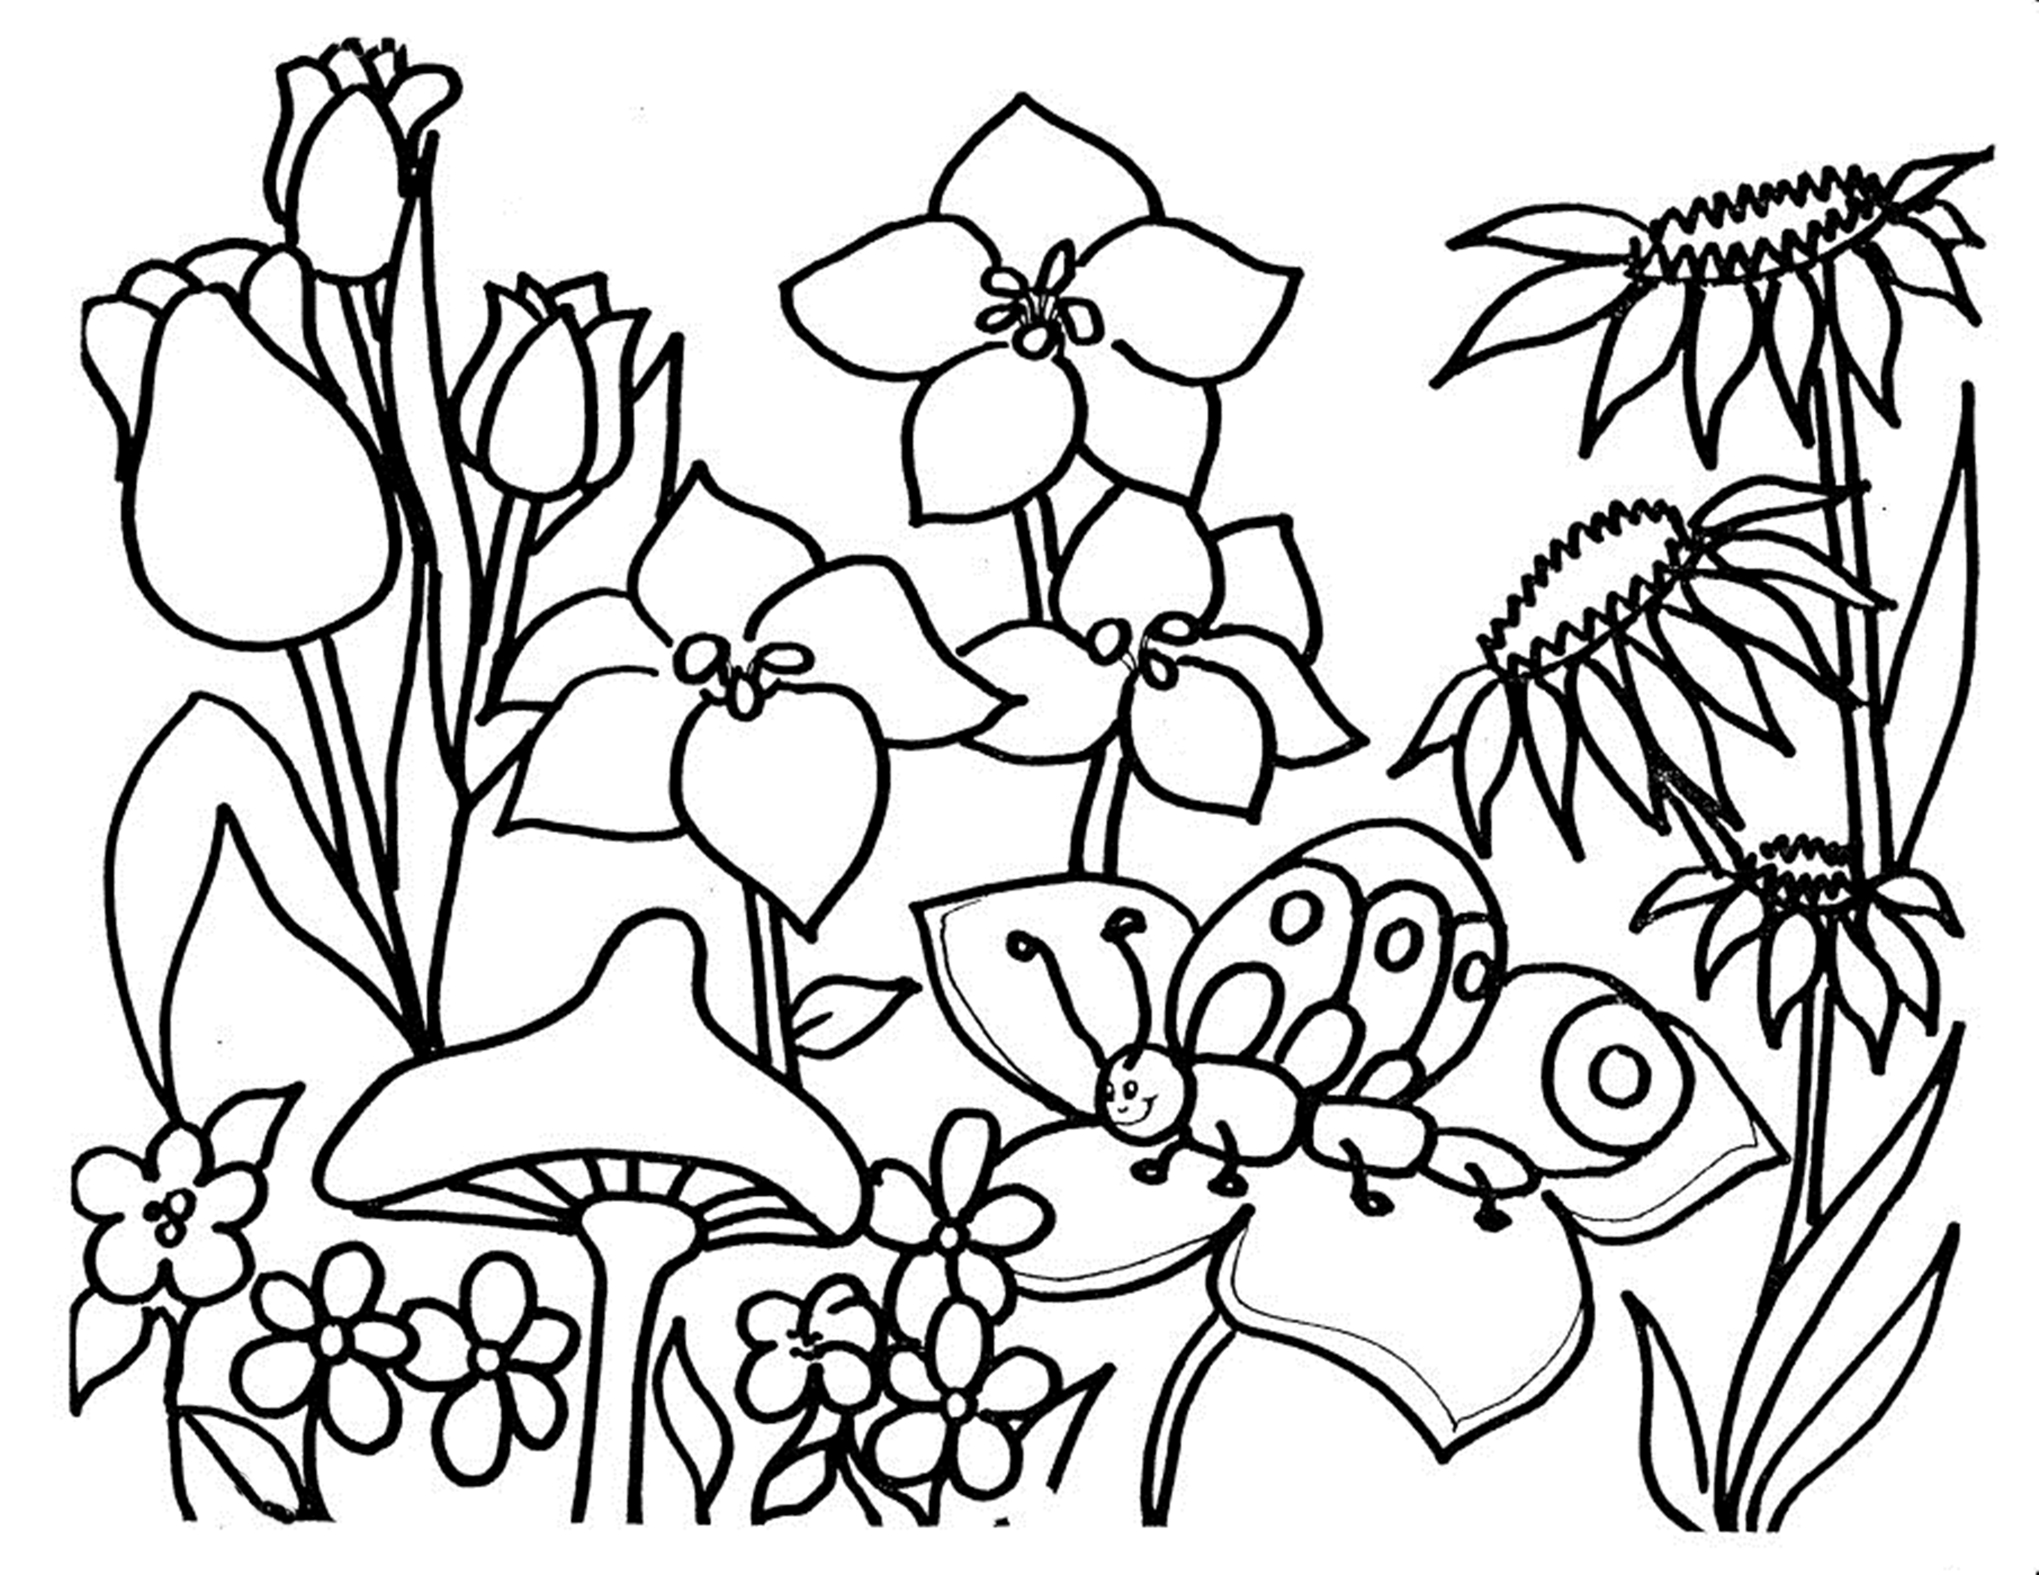 Colouring in pictures of flowers - Pictures For Coloring Flowers